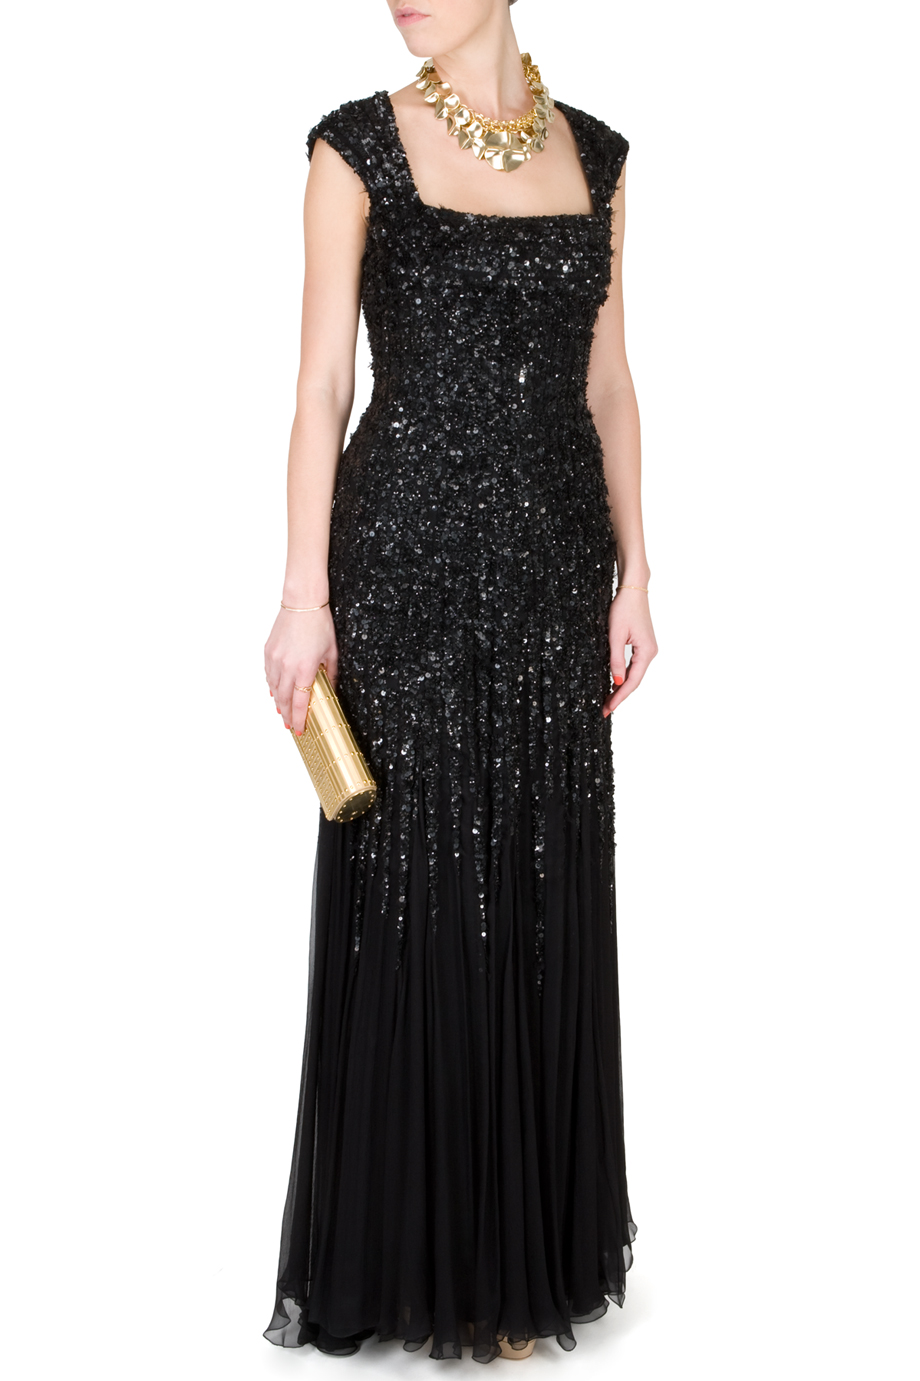 Lyst - Elie Saab Backless Sequin Gown in Black 862a693ba